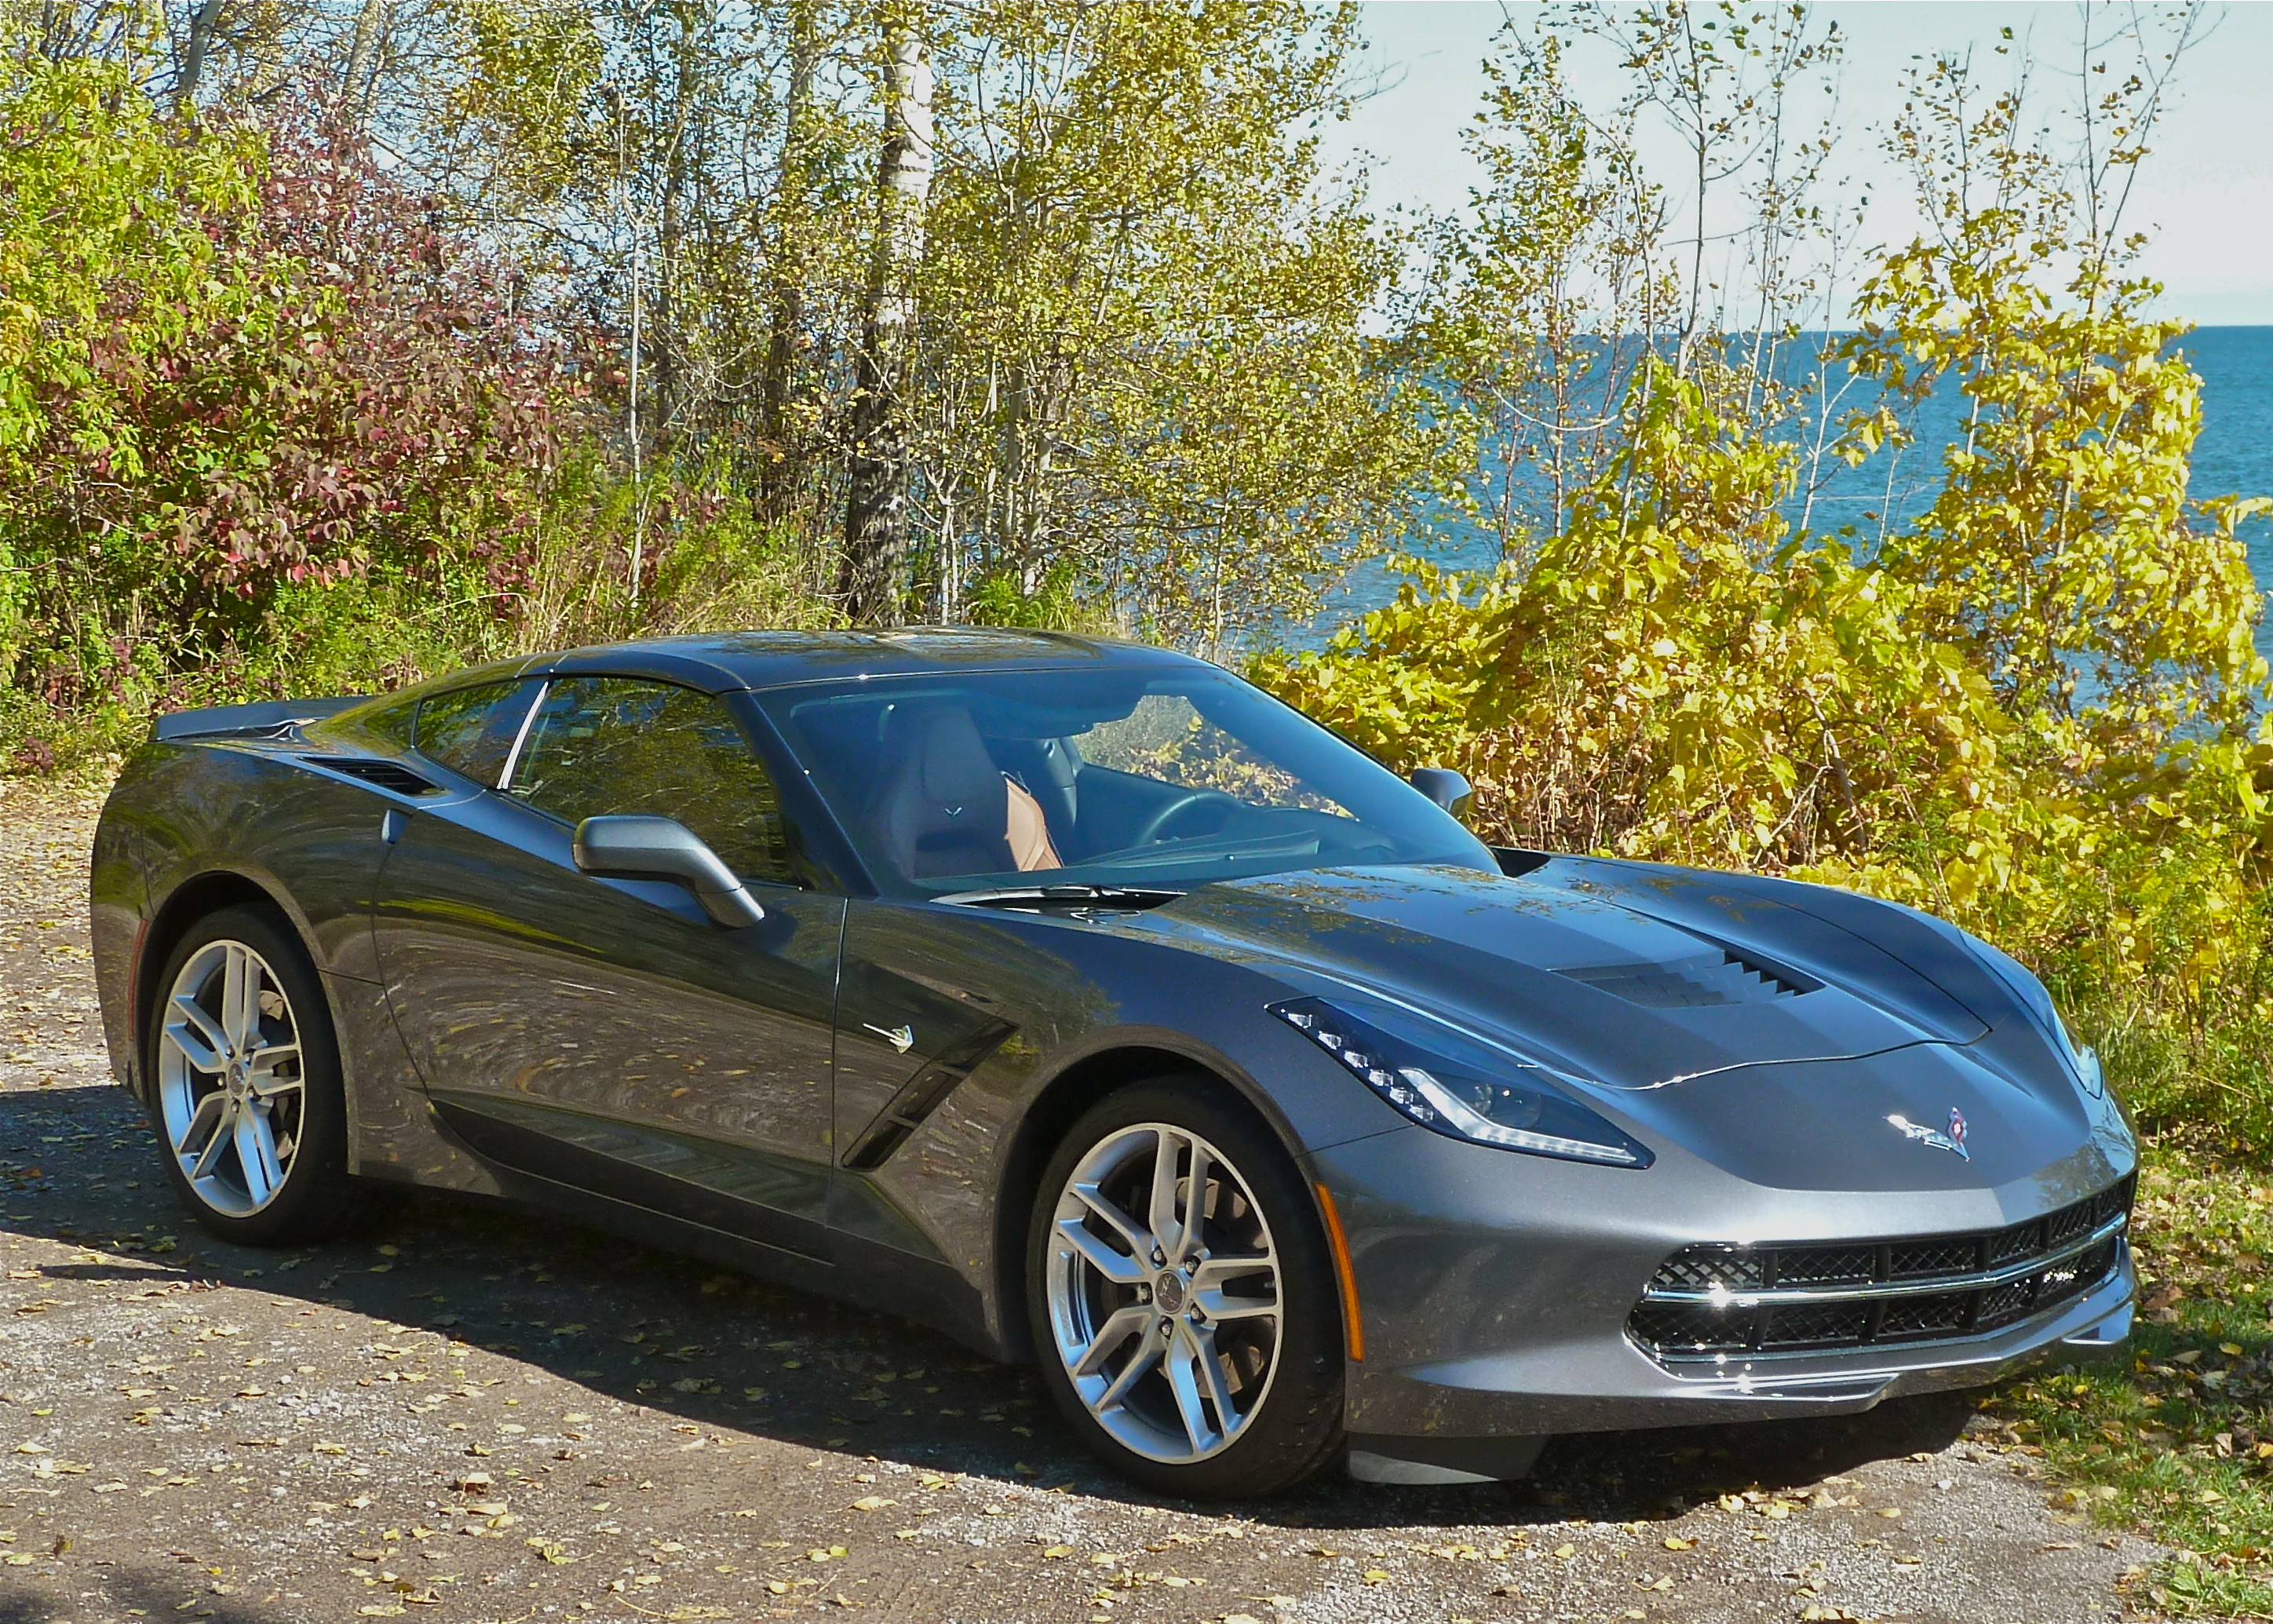 Chevrolet Stingray voted 2014 North American Car of the Year.